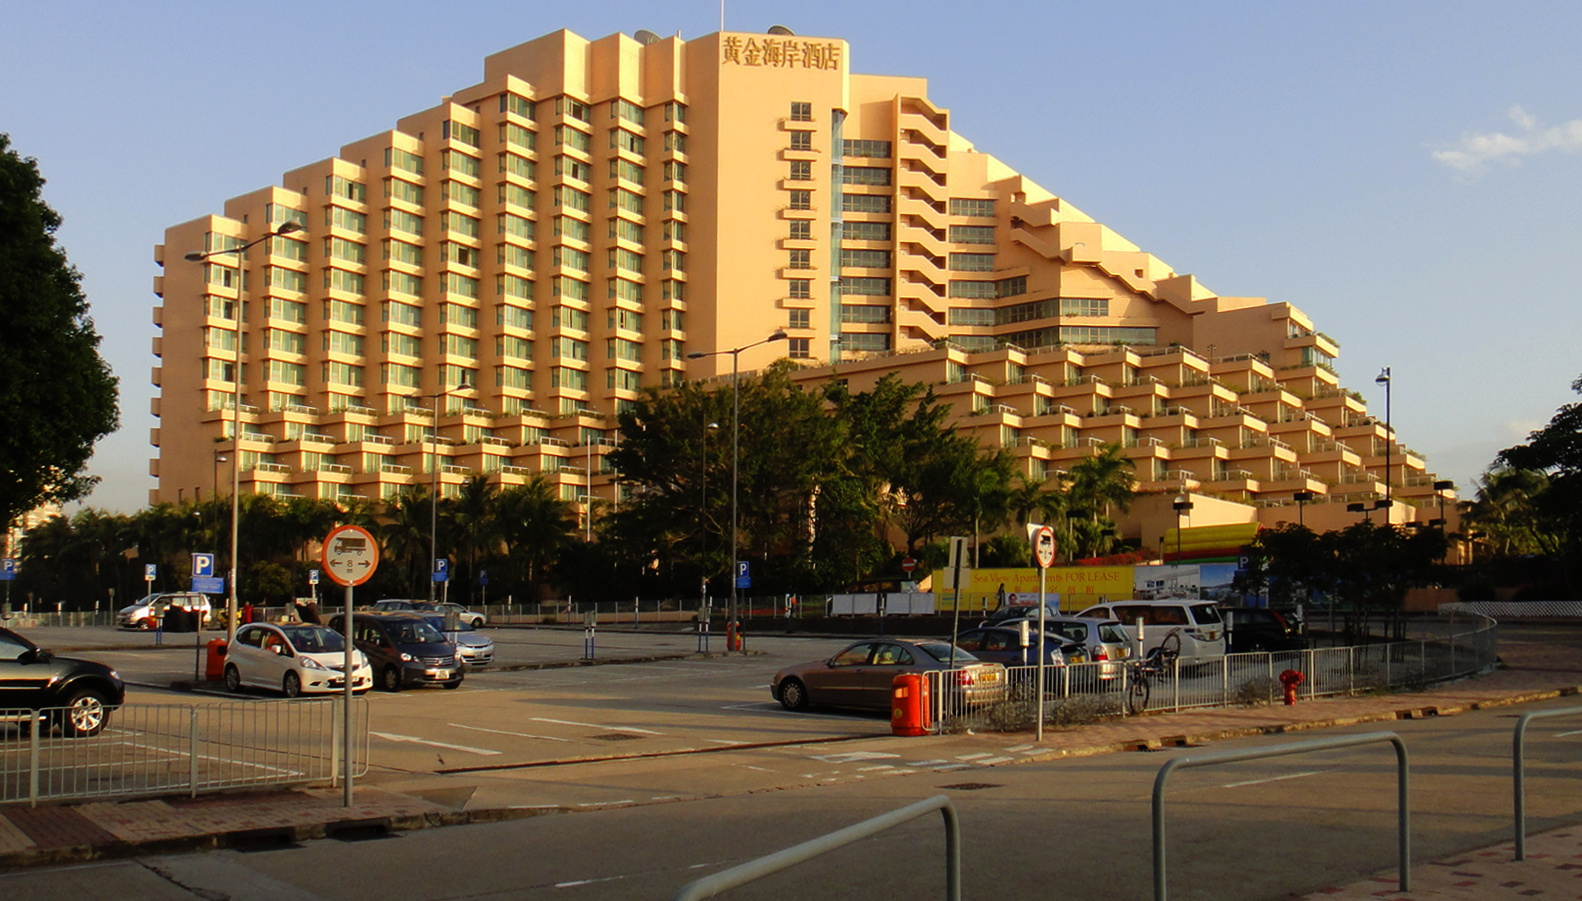 gold coast hotel and casino